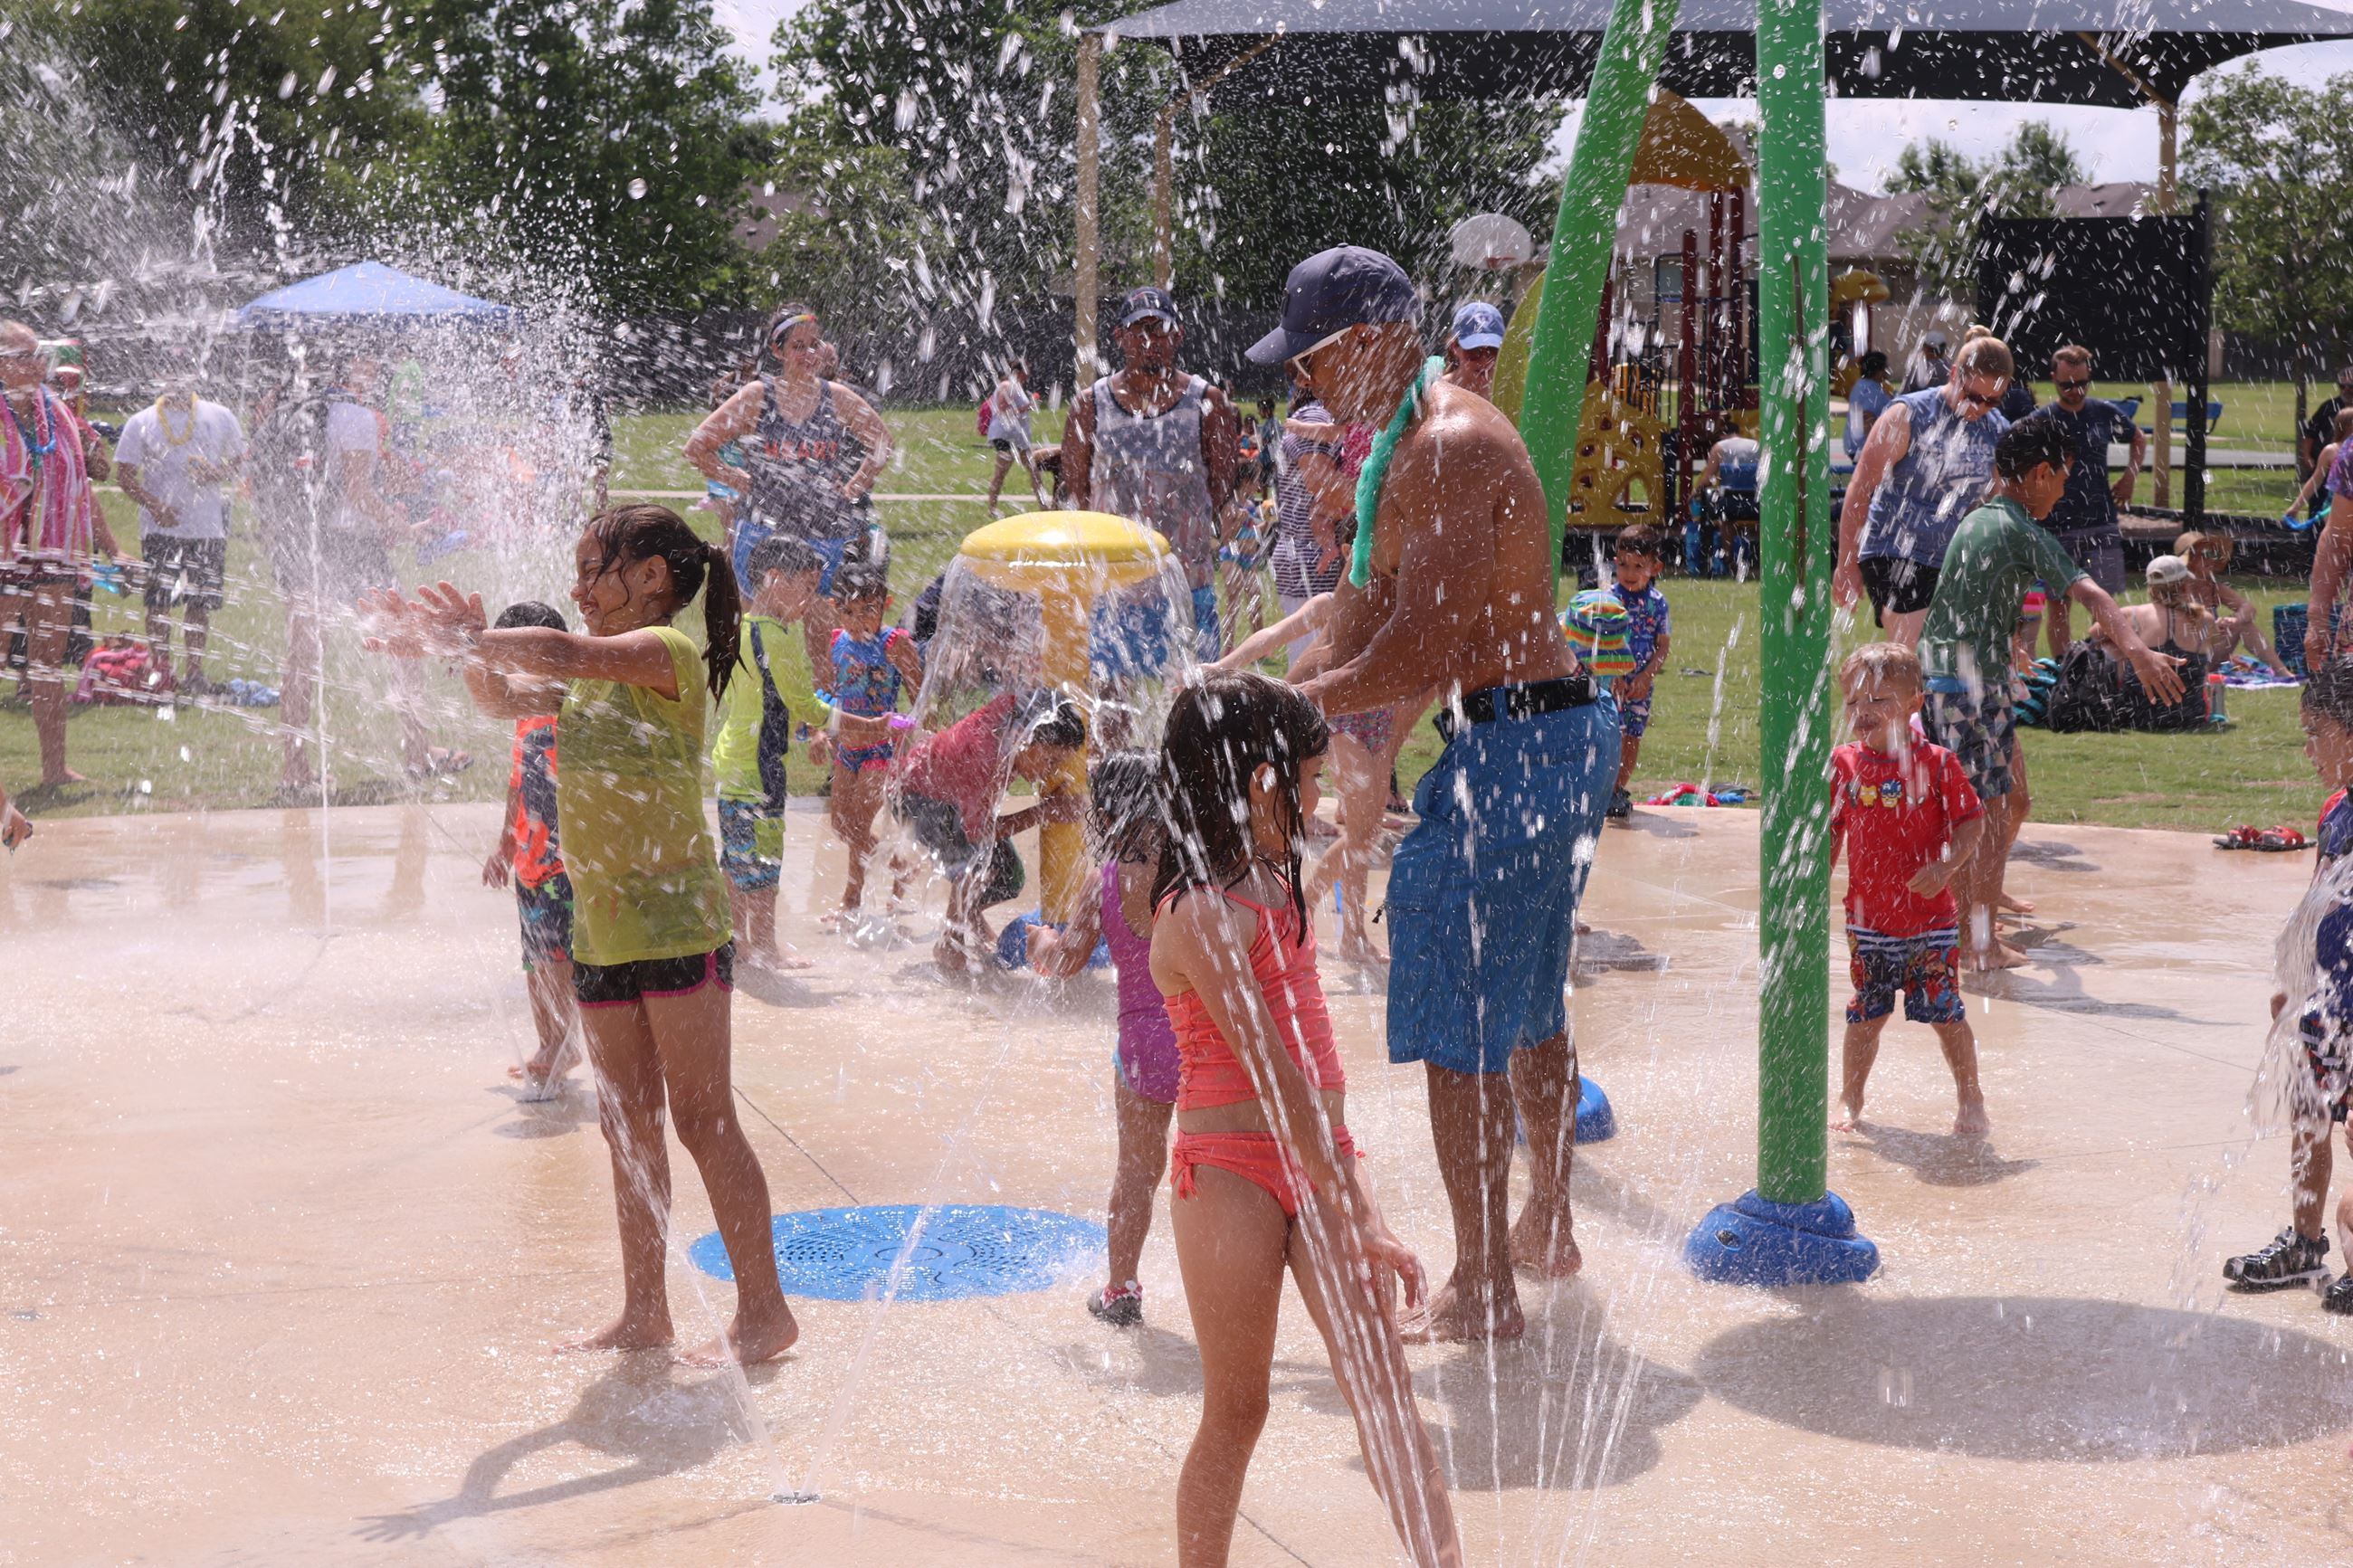 Green Meadows Splash Pad